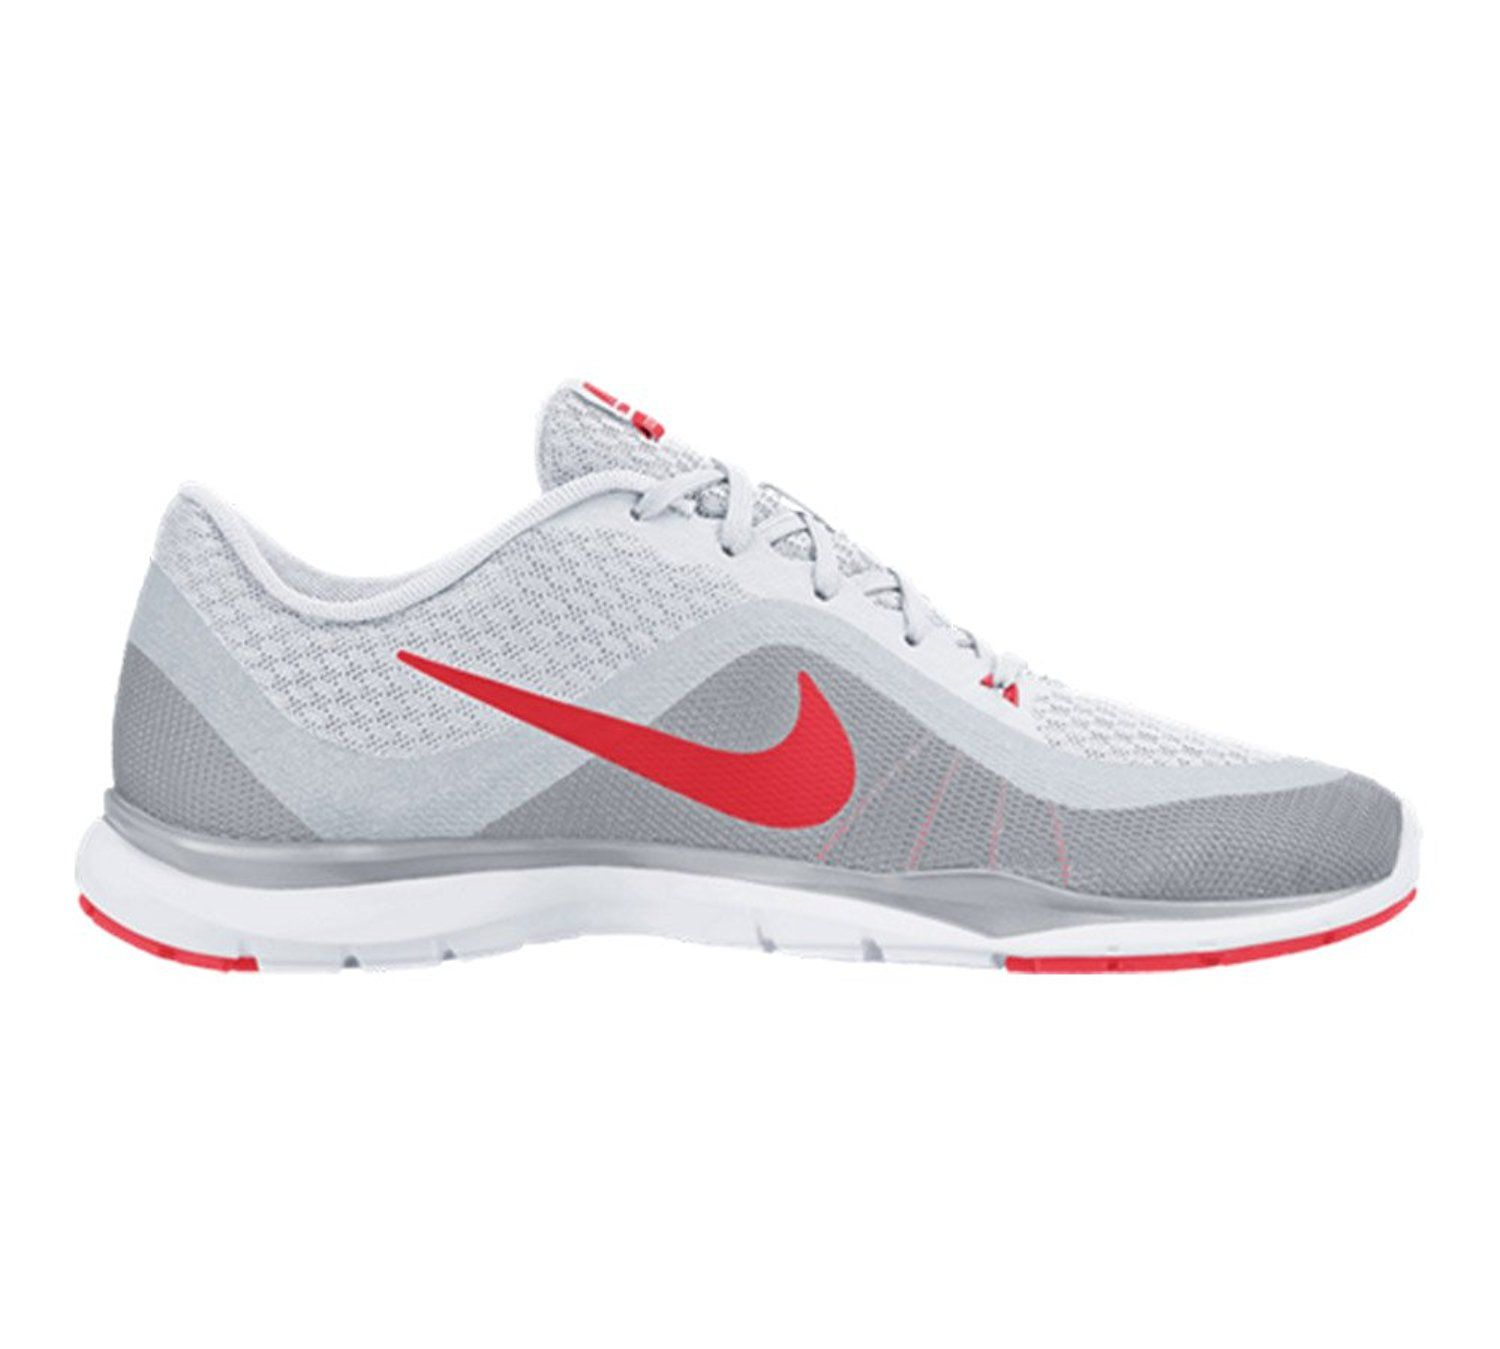 5817598151b95 Nike Flex Trainer 6 White Pure Platinum Wolf Grey Bright Crimson Womens  Cross Training Shoes